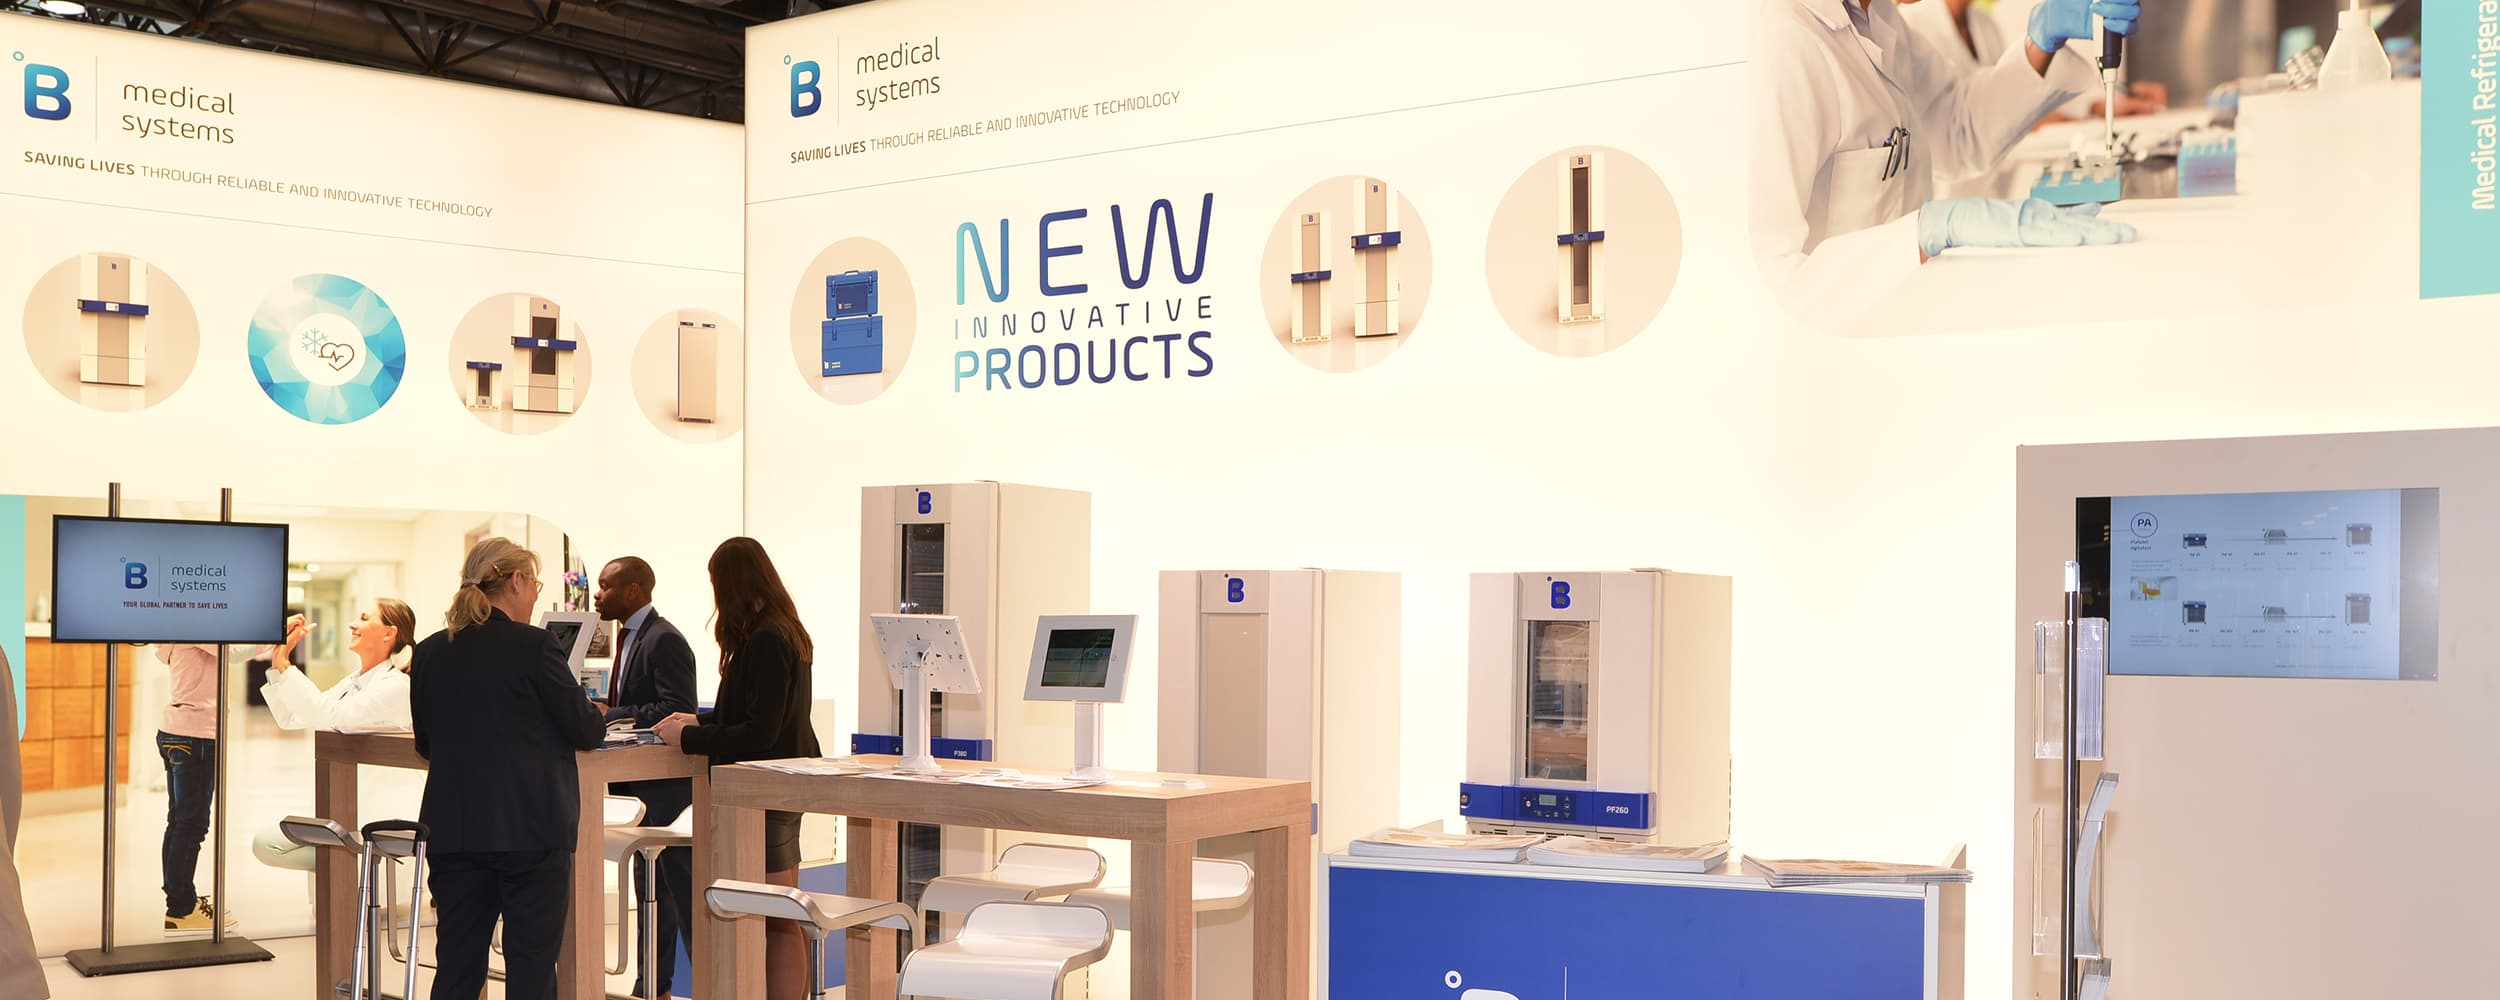 B Medical Systems booth at Analytica